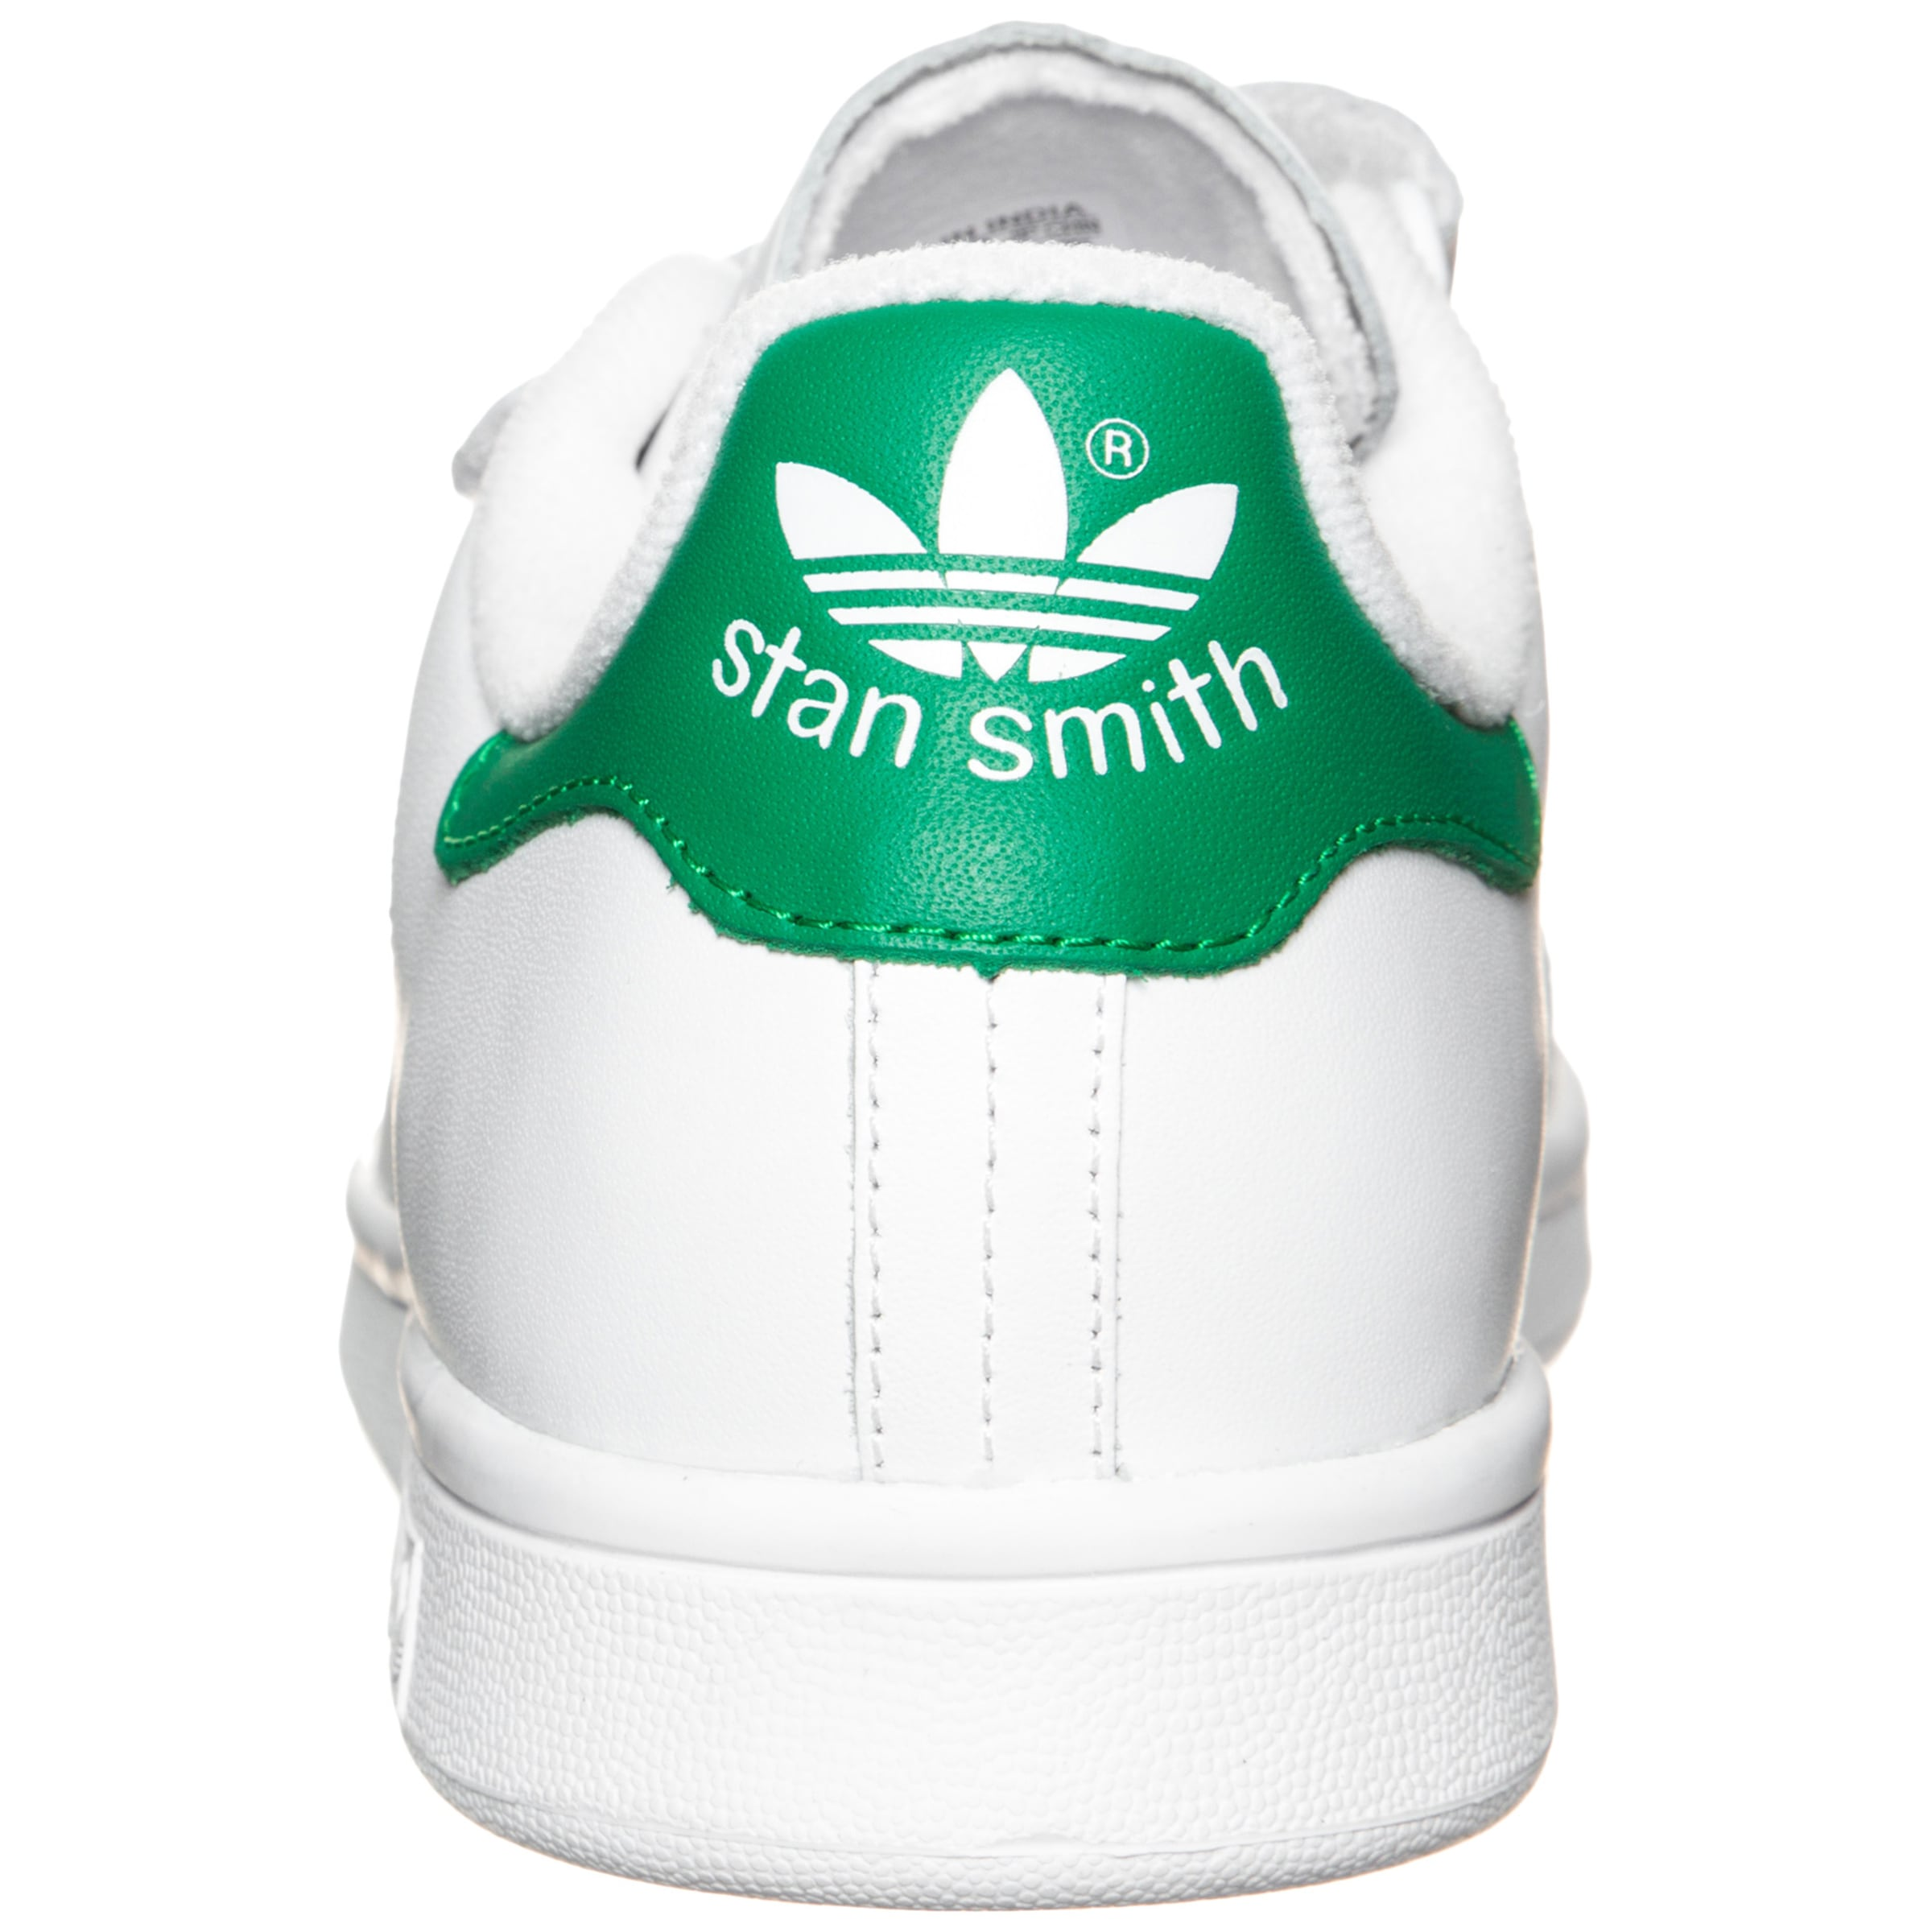 'stan Smith Adidas GrünWeiß Sneaker Originals In Cf' 4j5AR3qL